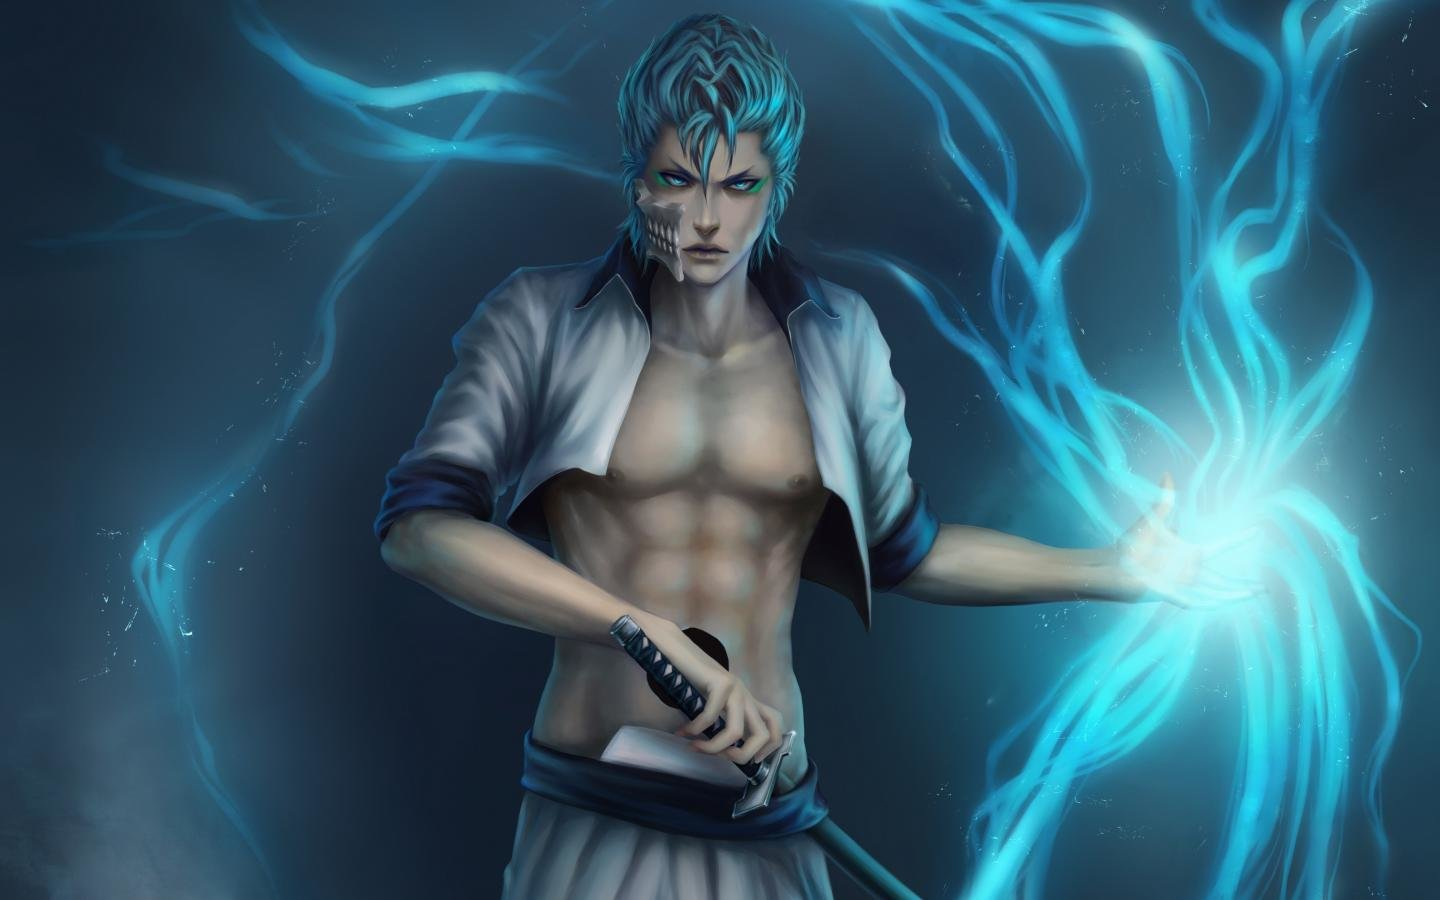 Download hd 1440x900 Grimmjow Jaegerjaquez PC background ID:419012 for free